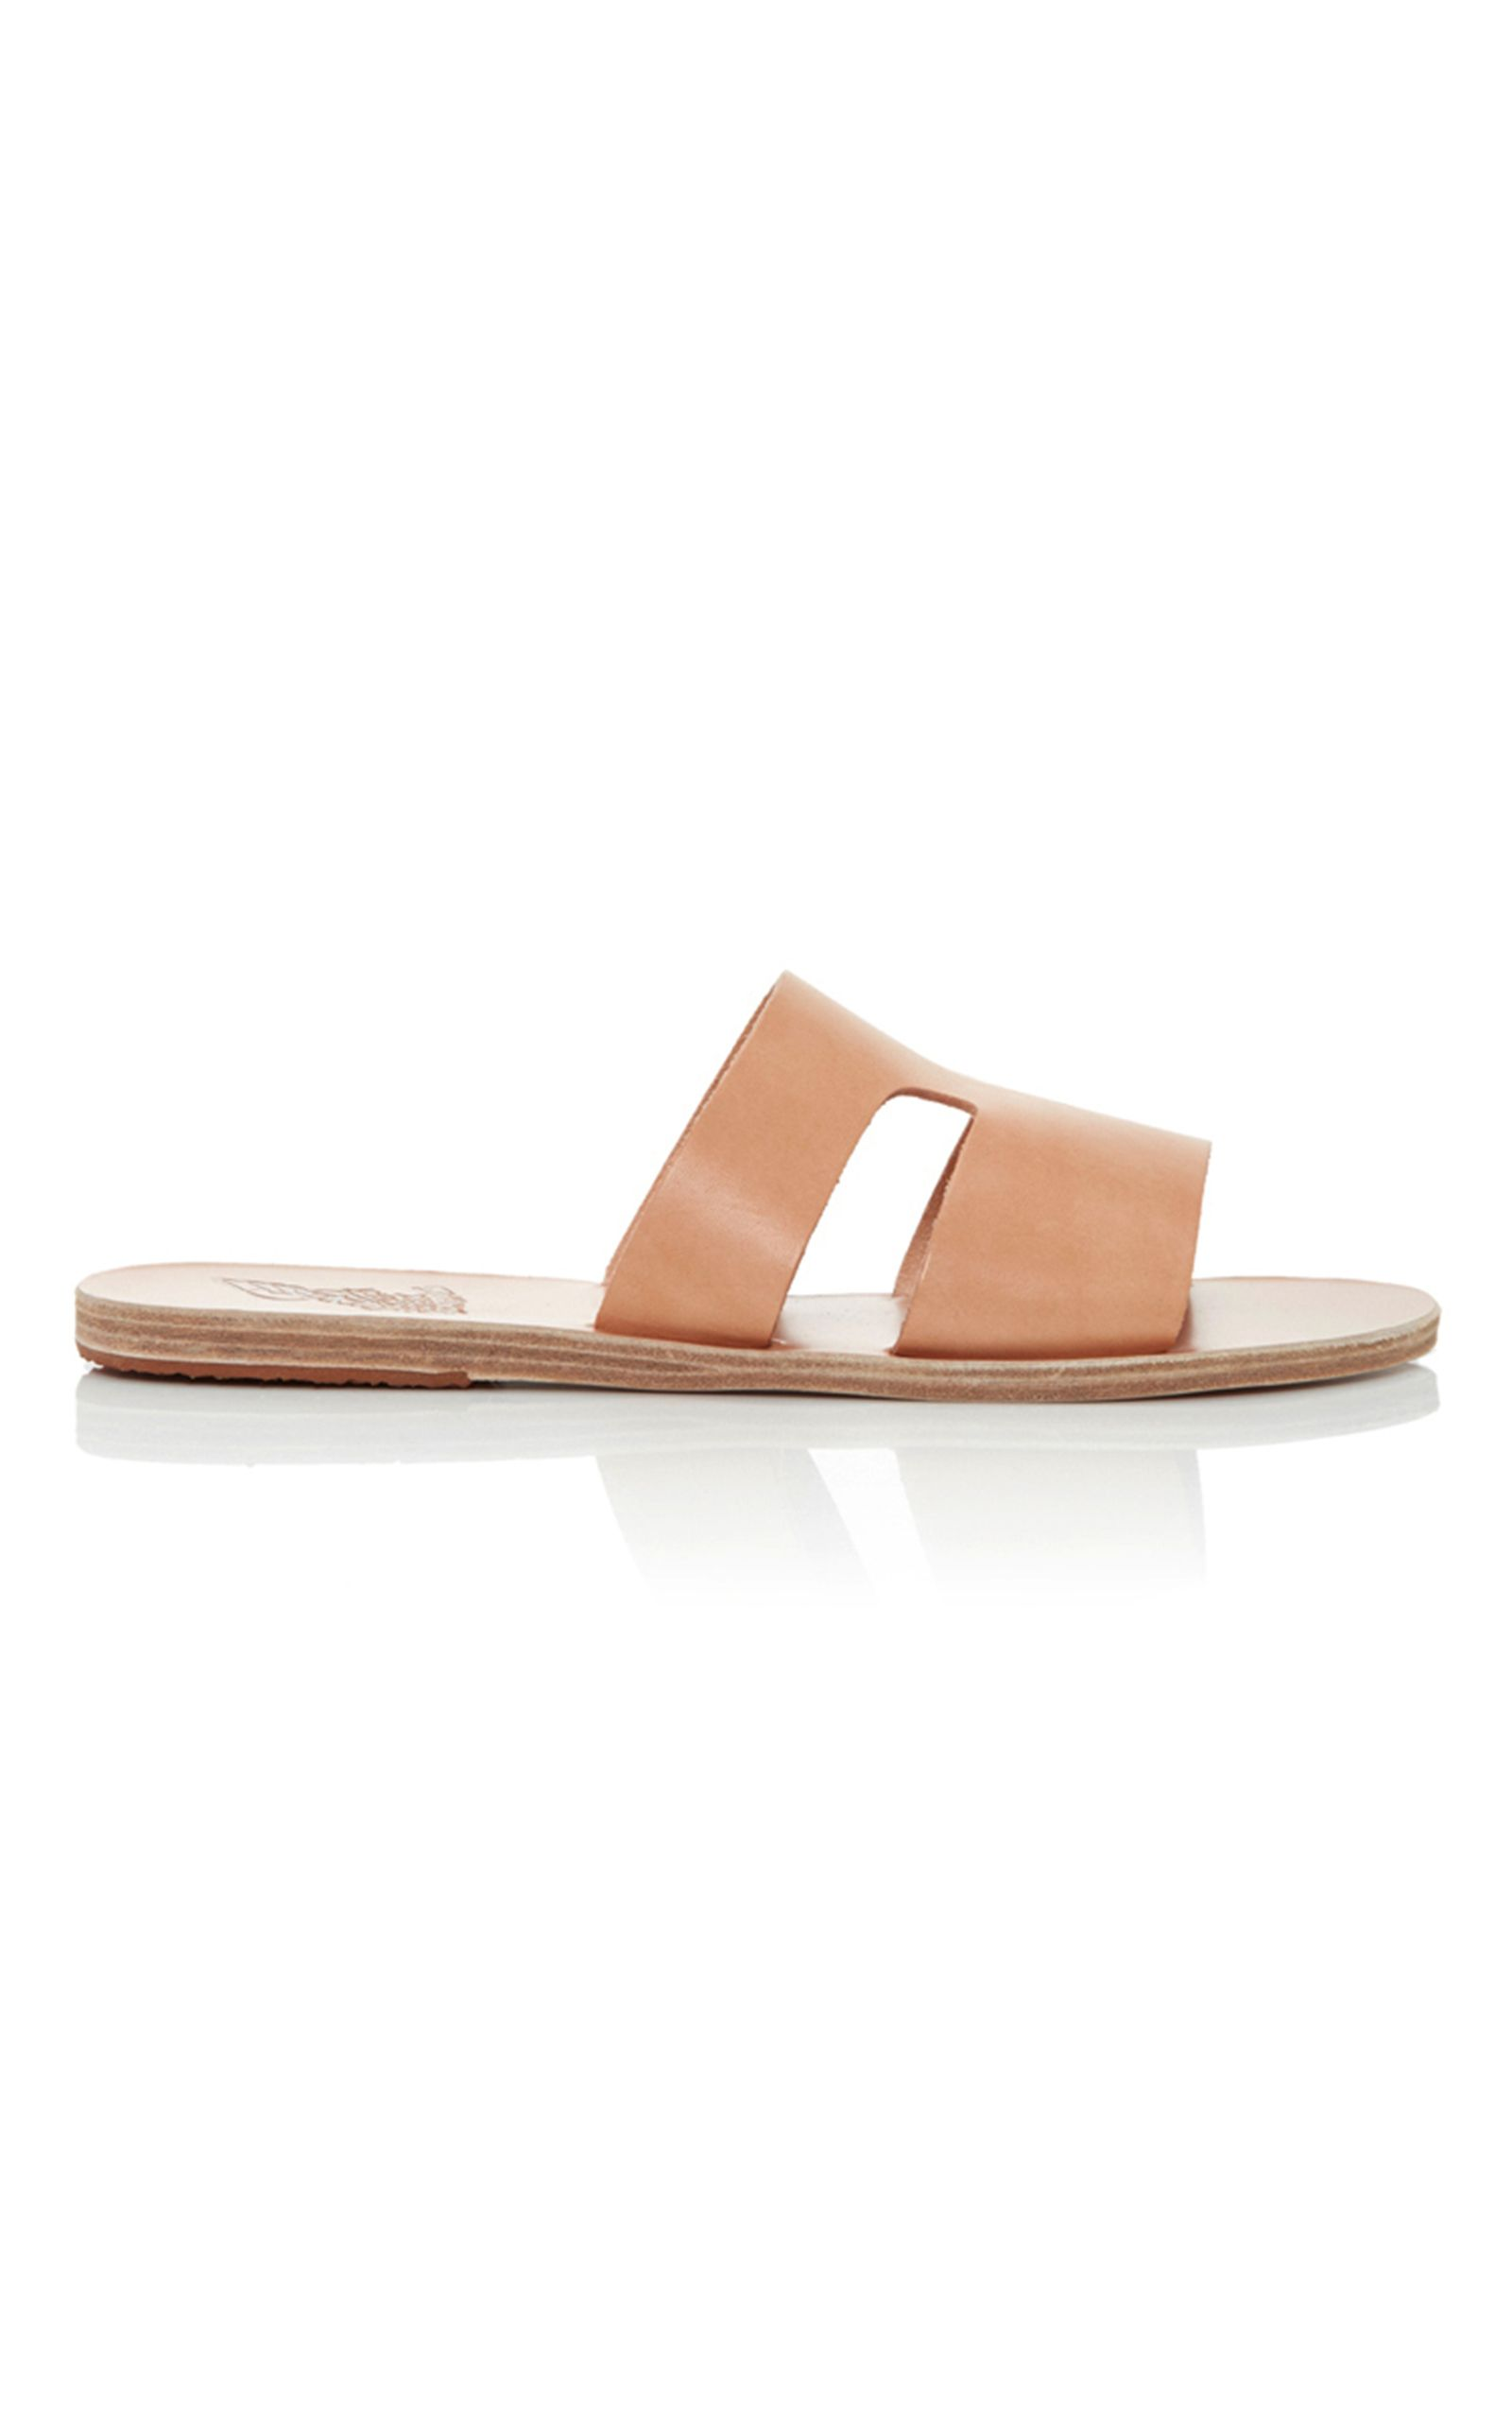 774ed05a4 Apteros Sandals by ANCIENT GREEK SANDALS Now Available on Moda Operandi